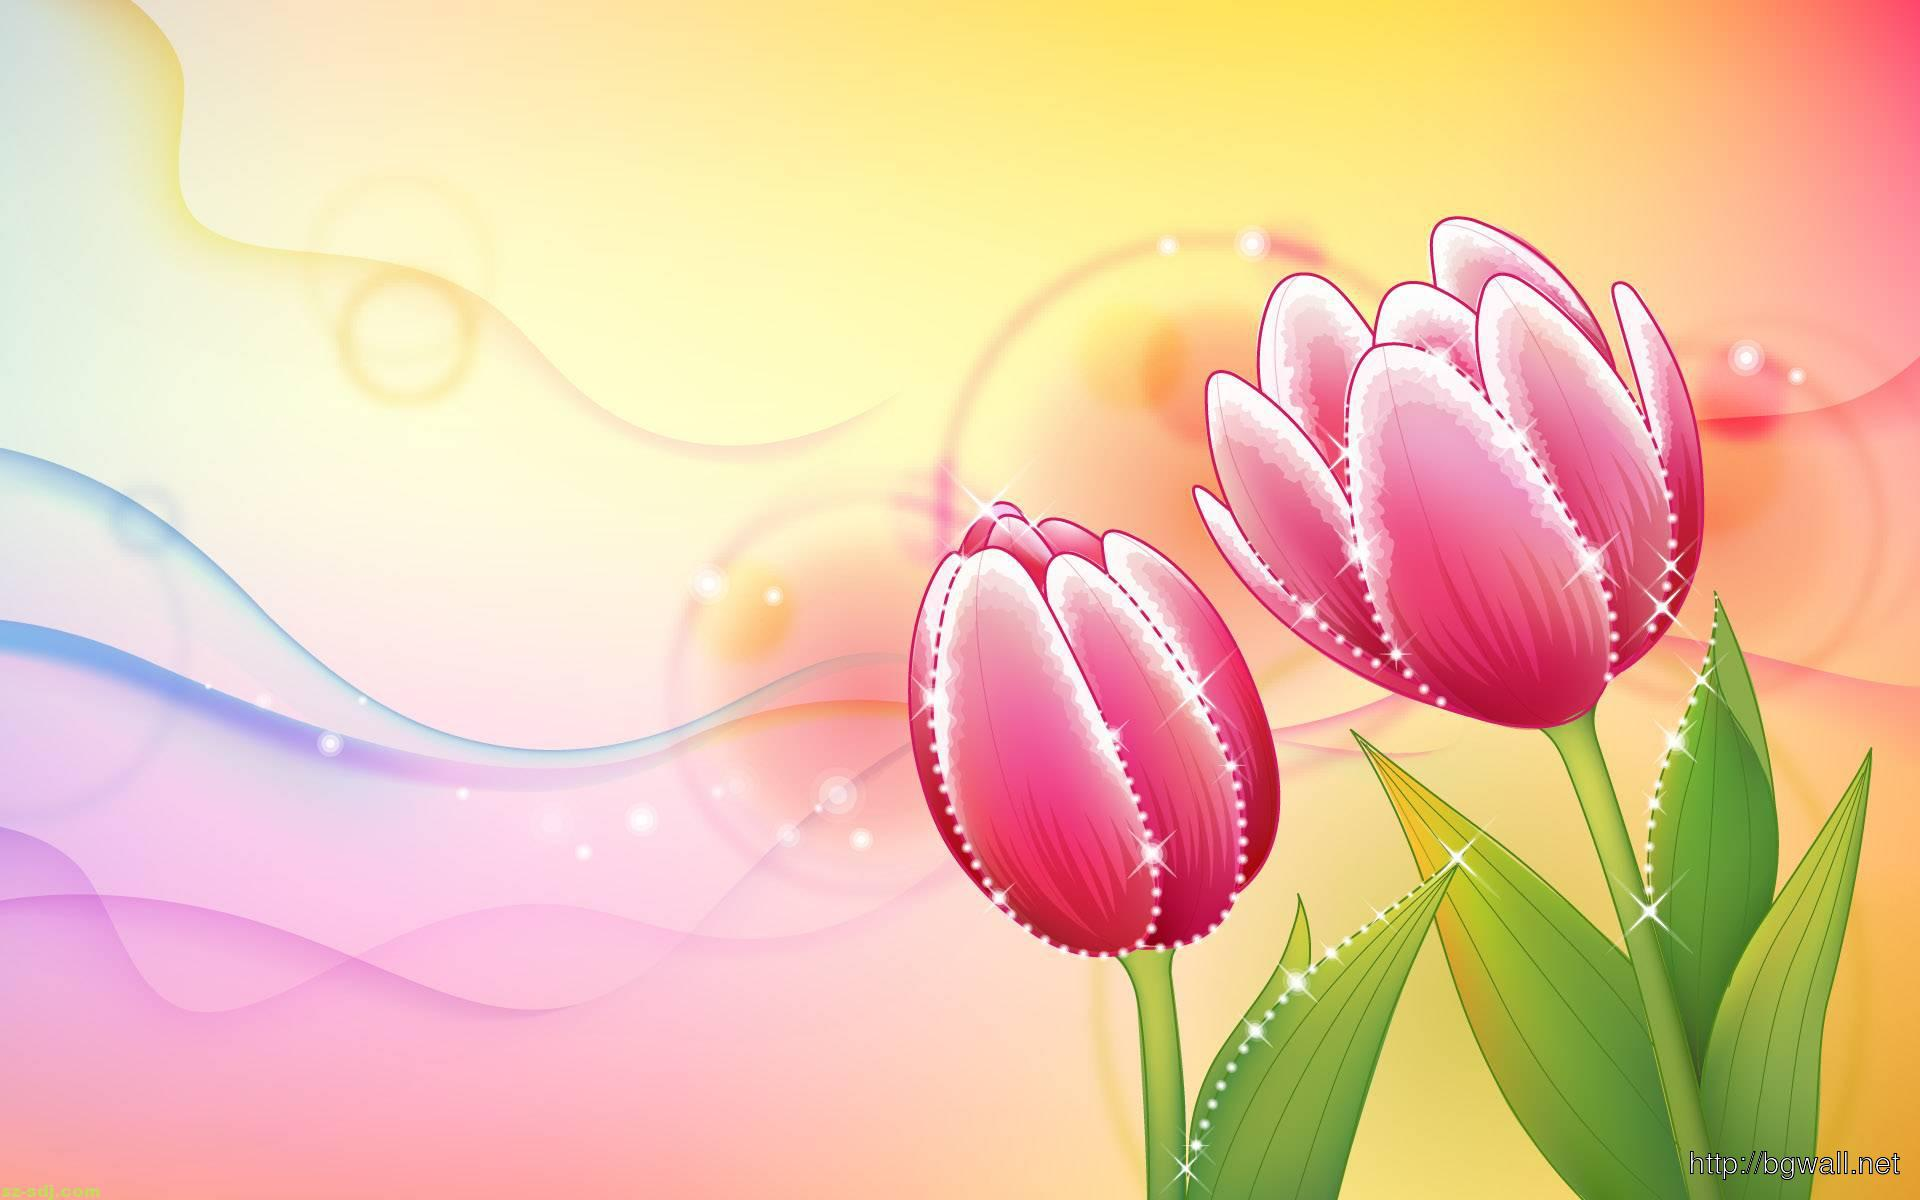 art flowers background wallpaper - photo #43